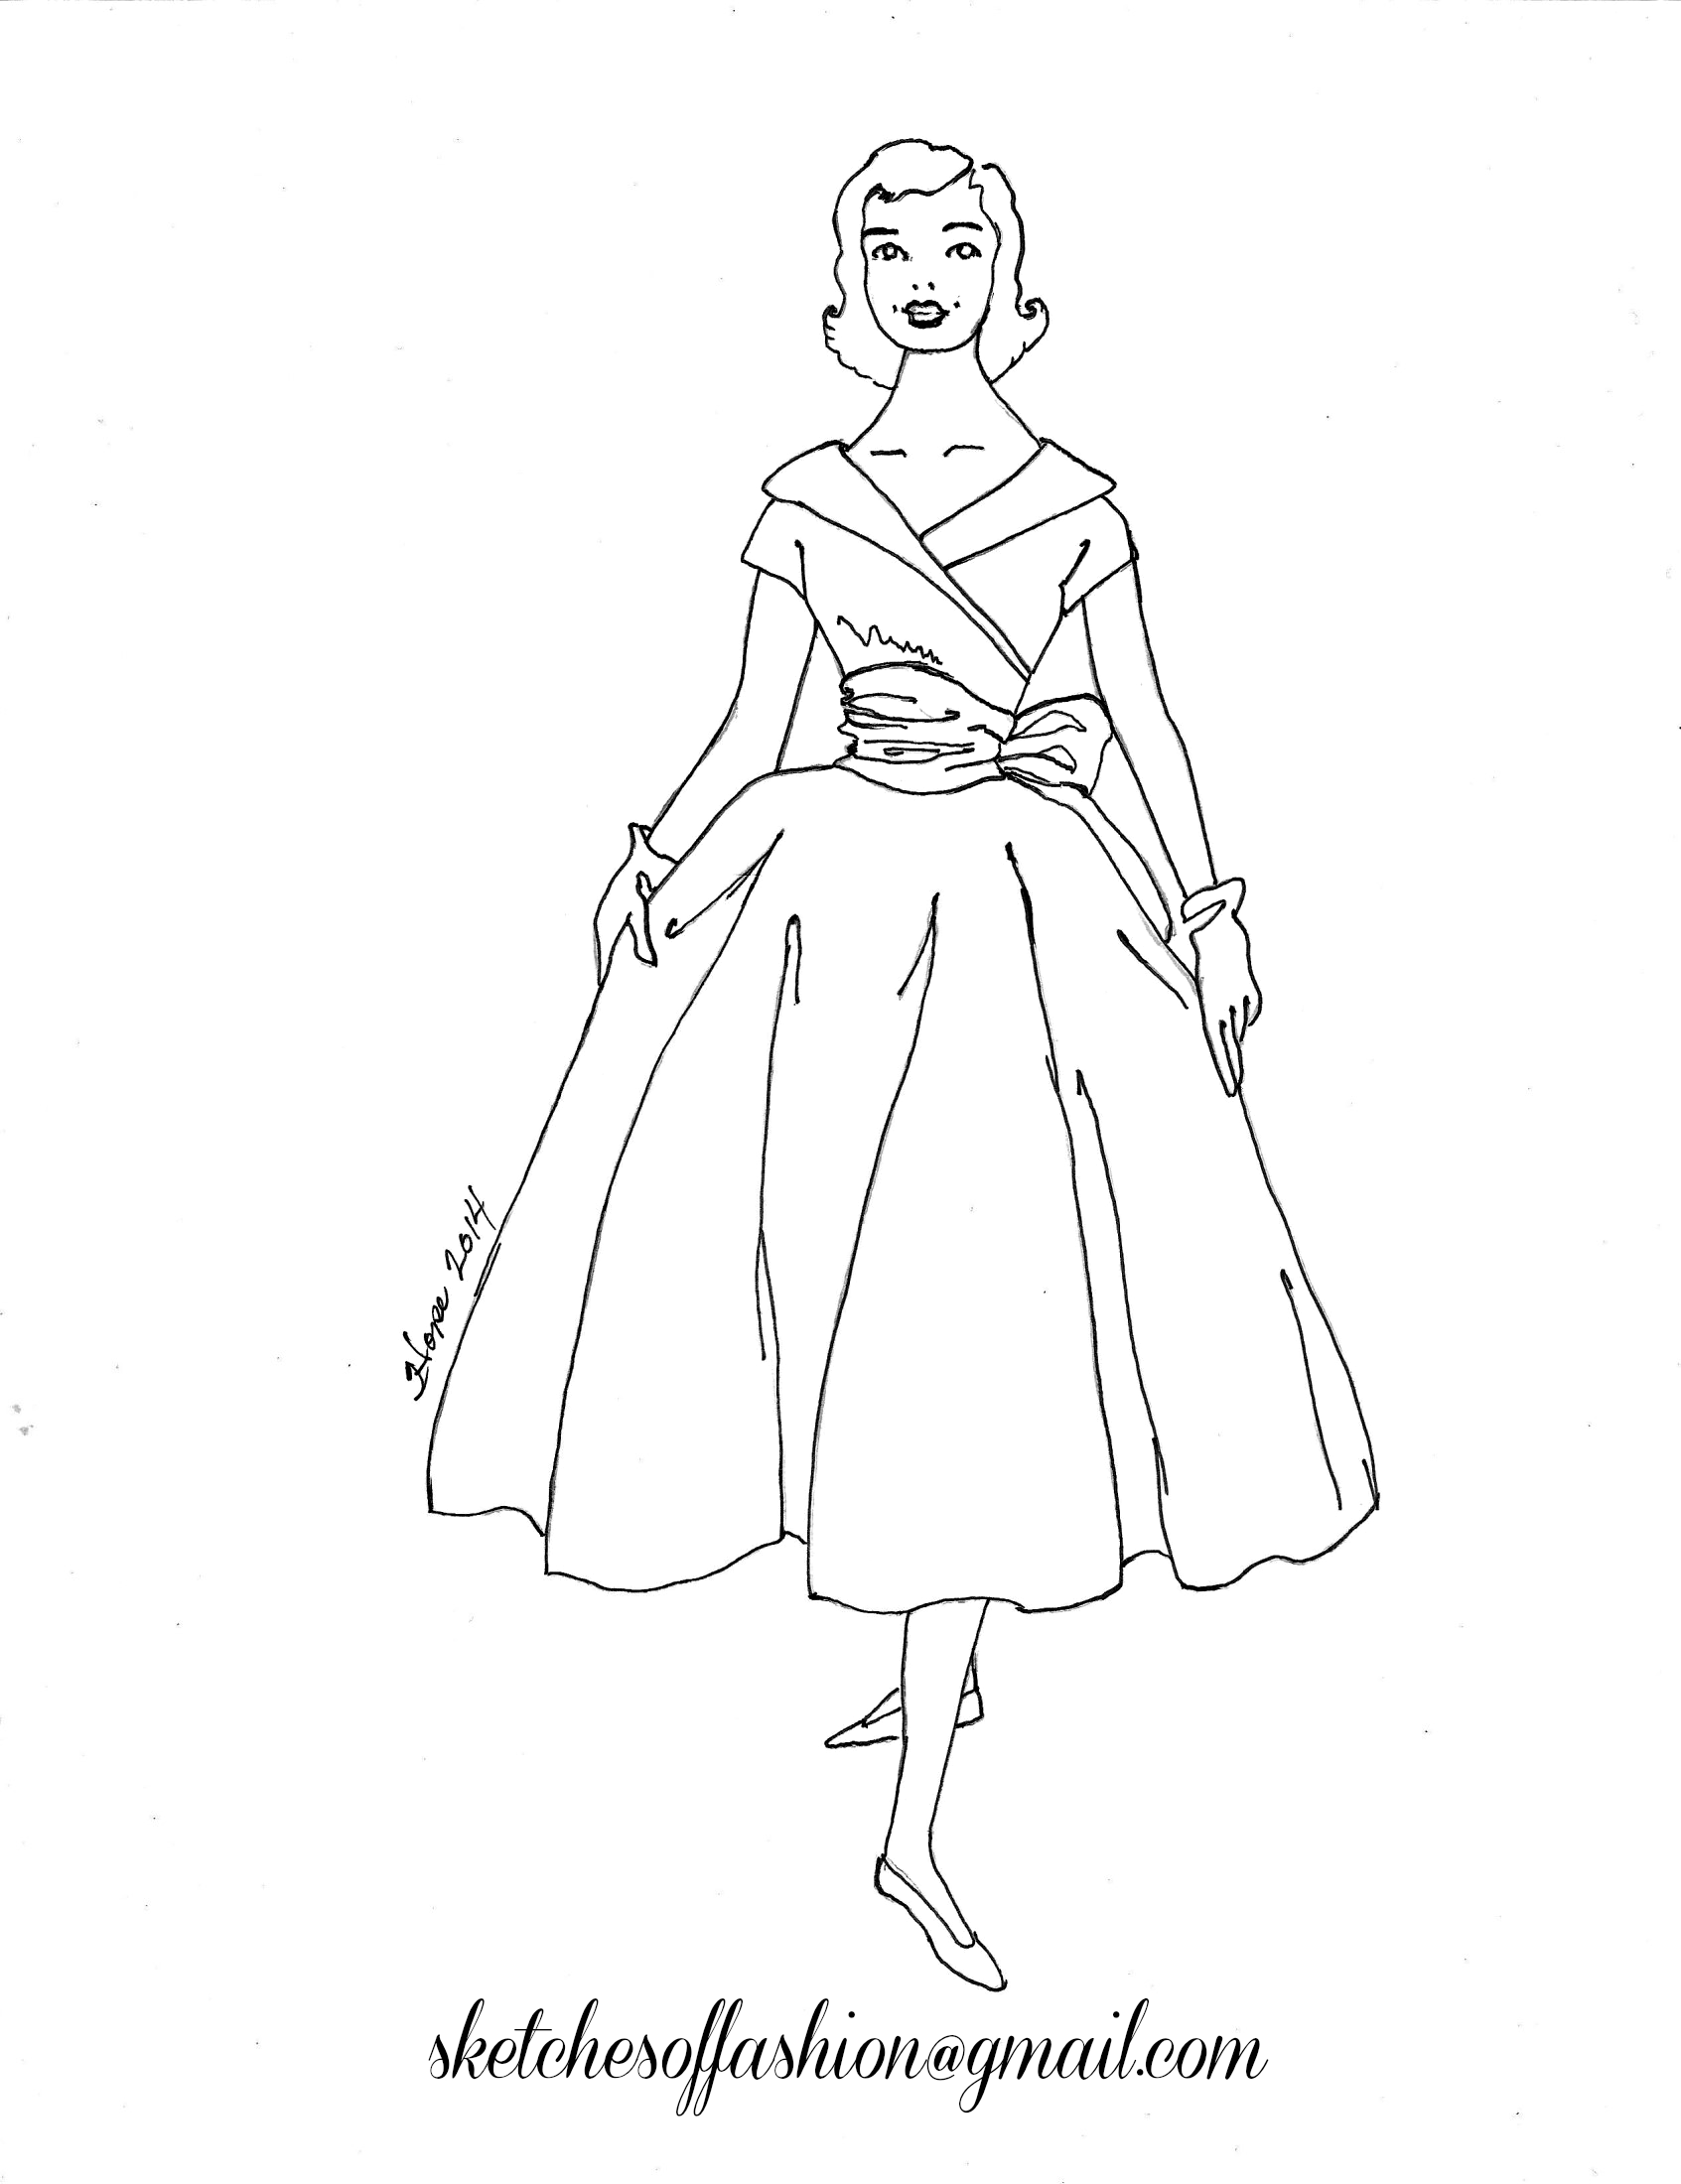 1950s coloring pages photo - 1